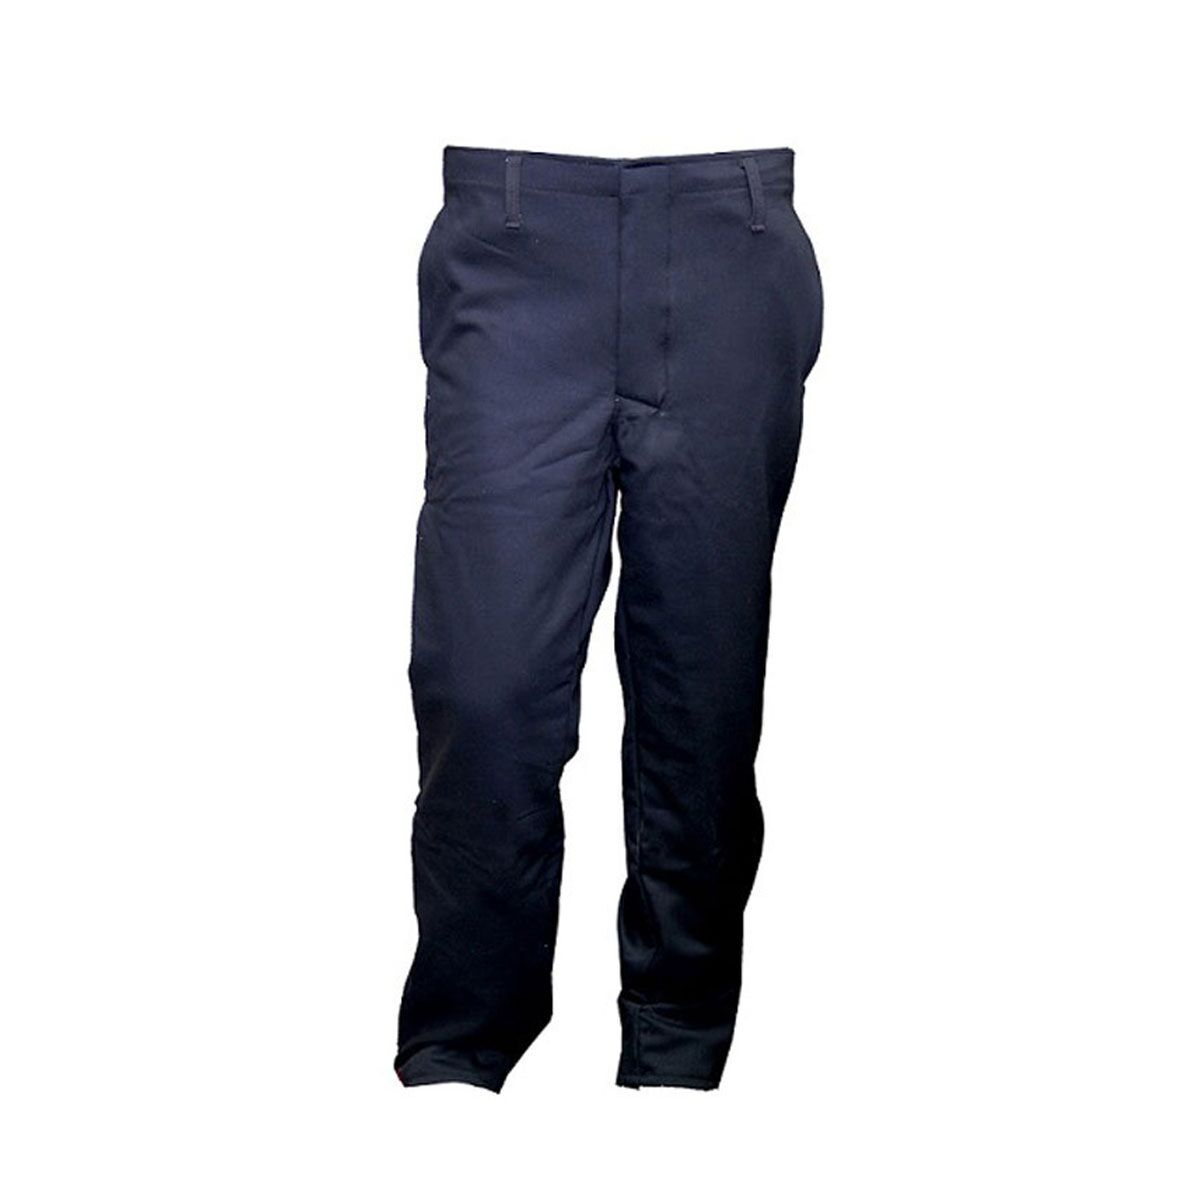 Chicago Protective Apparel -SWP-43 Arc Flash Pants, 3-Ply Ultrasoft, ATPV 43 cal.